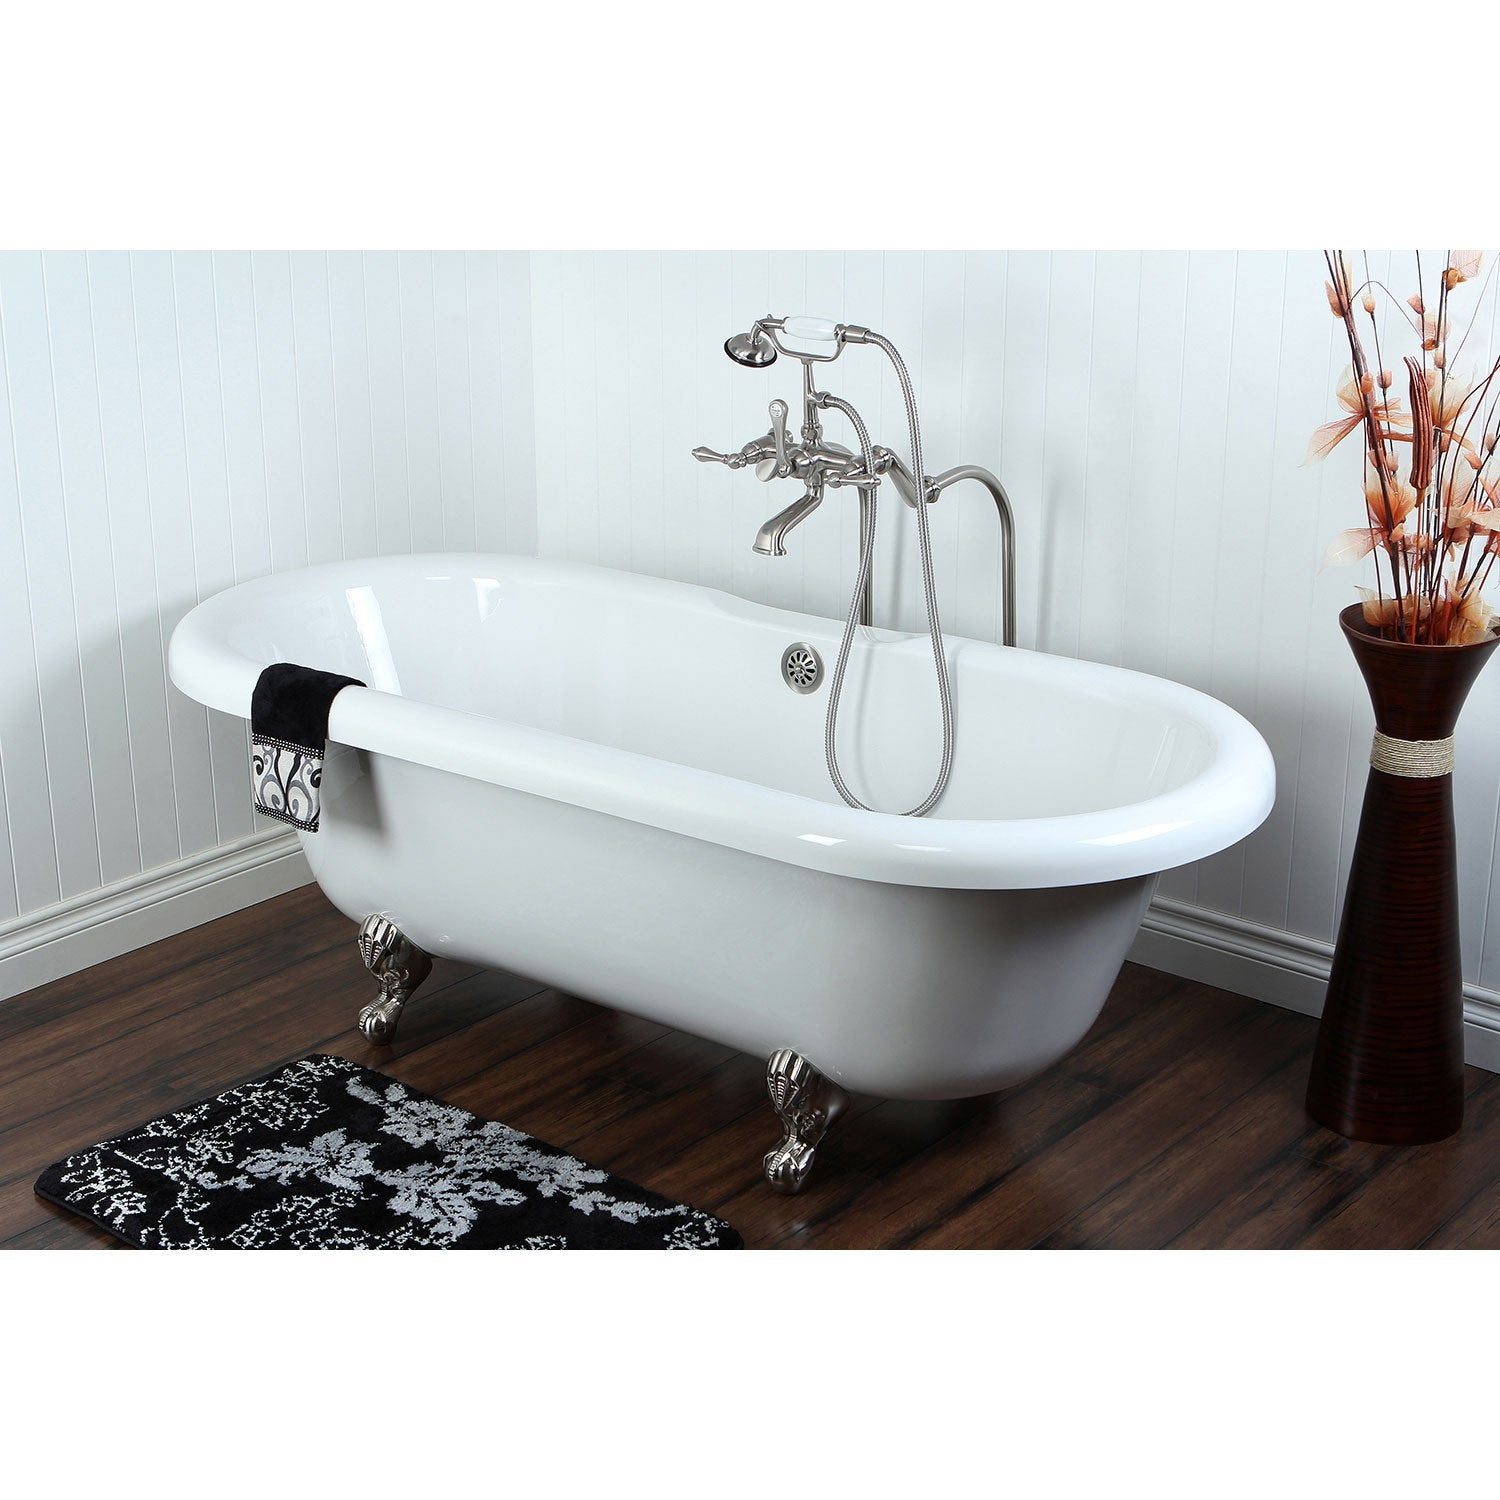 "67"" Acrylic Clawfoot Tub with Freestanding Satin Nickel Tub Faucet Package CTP56"